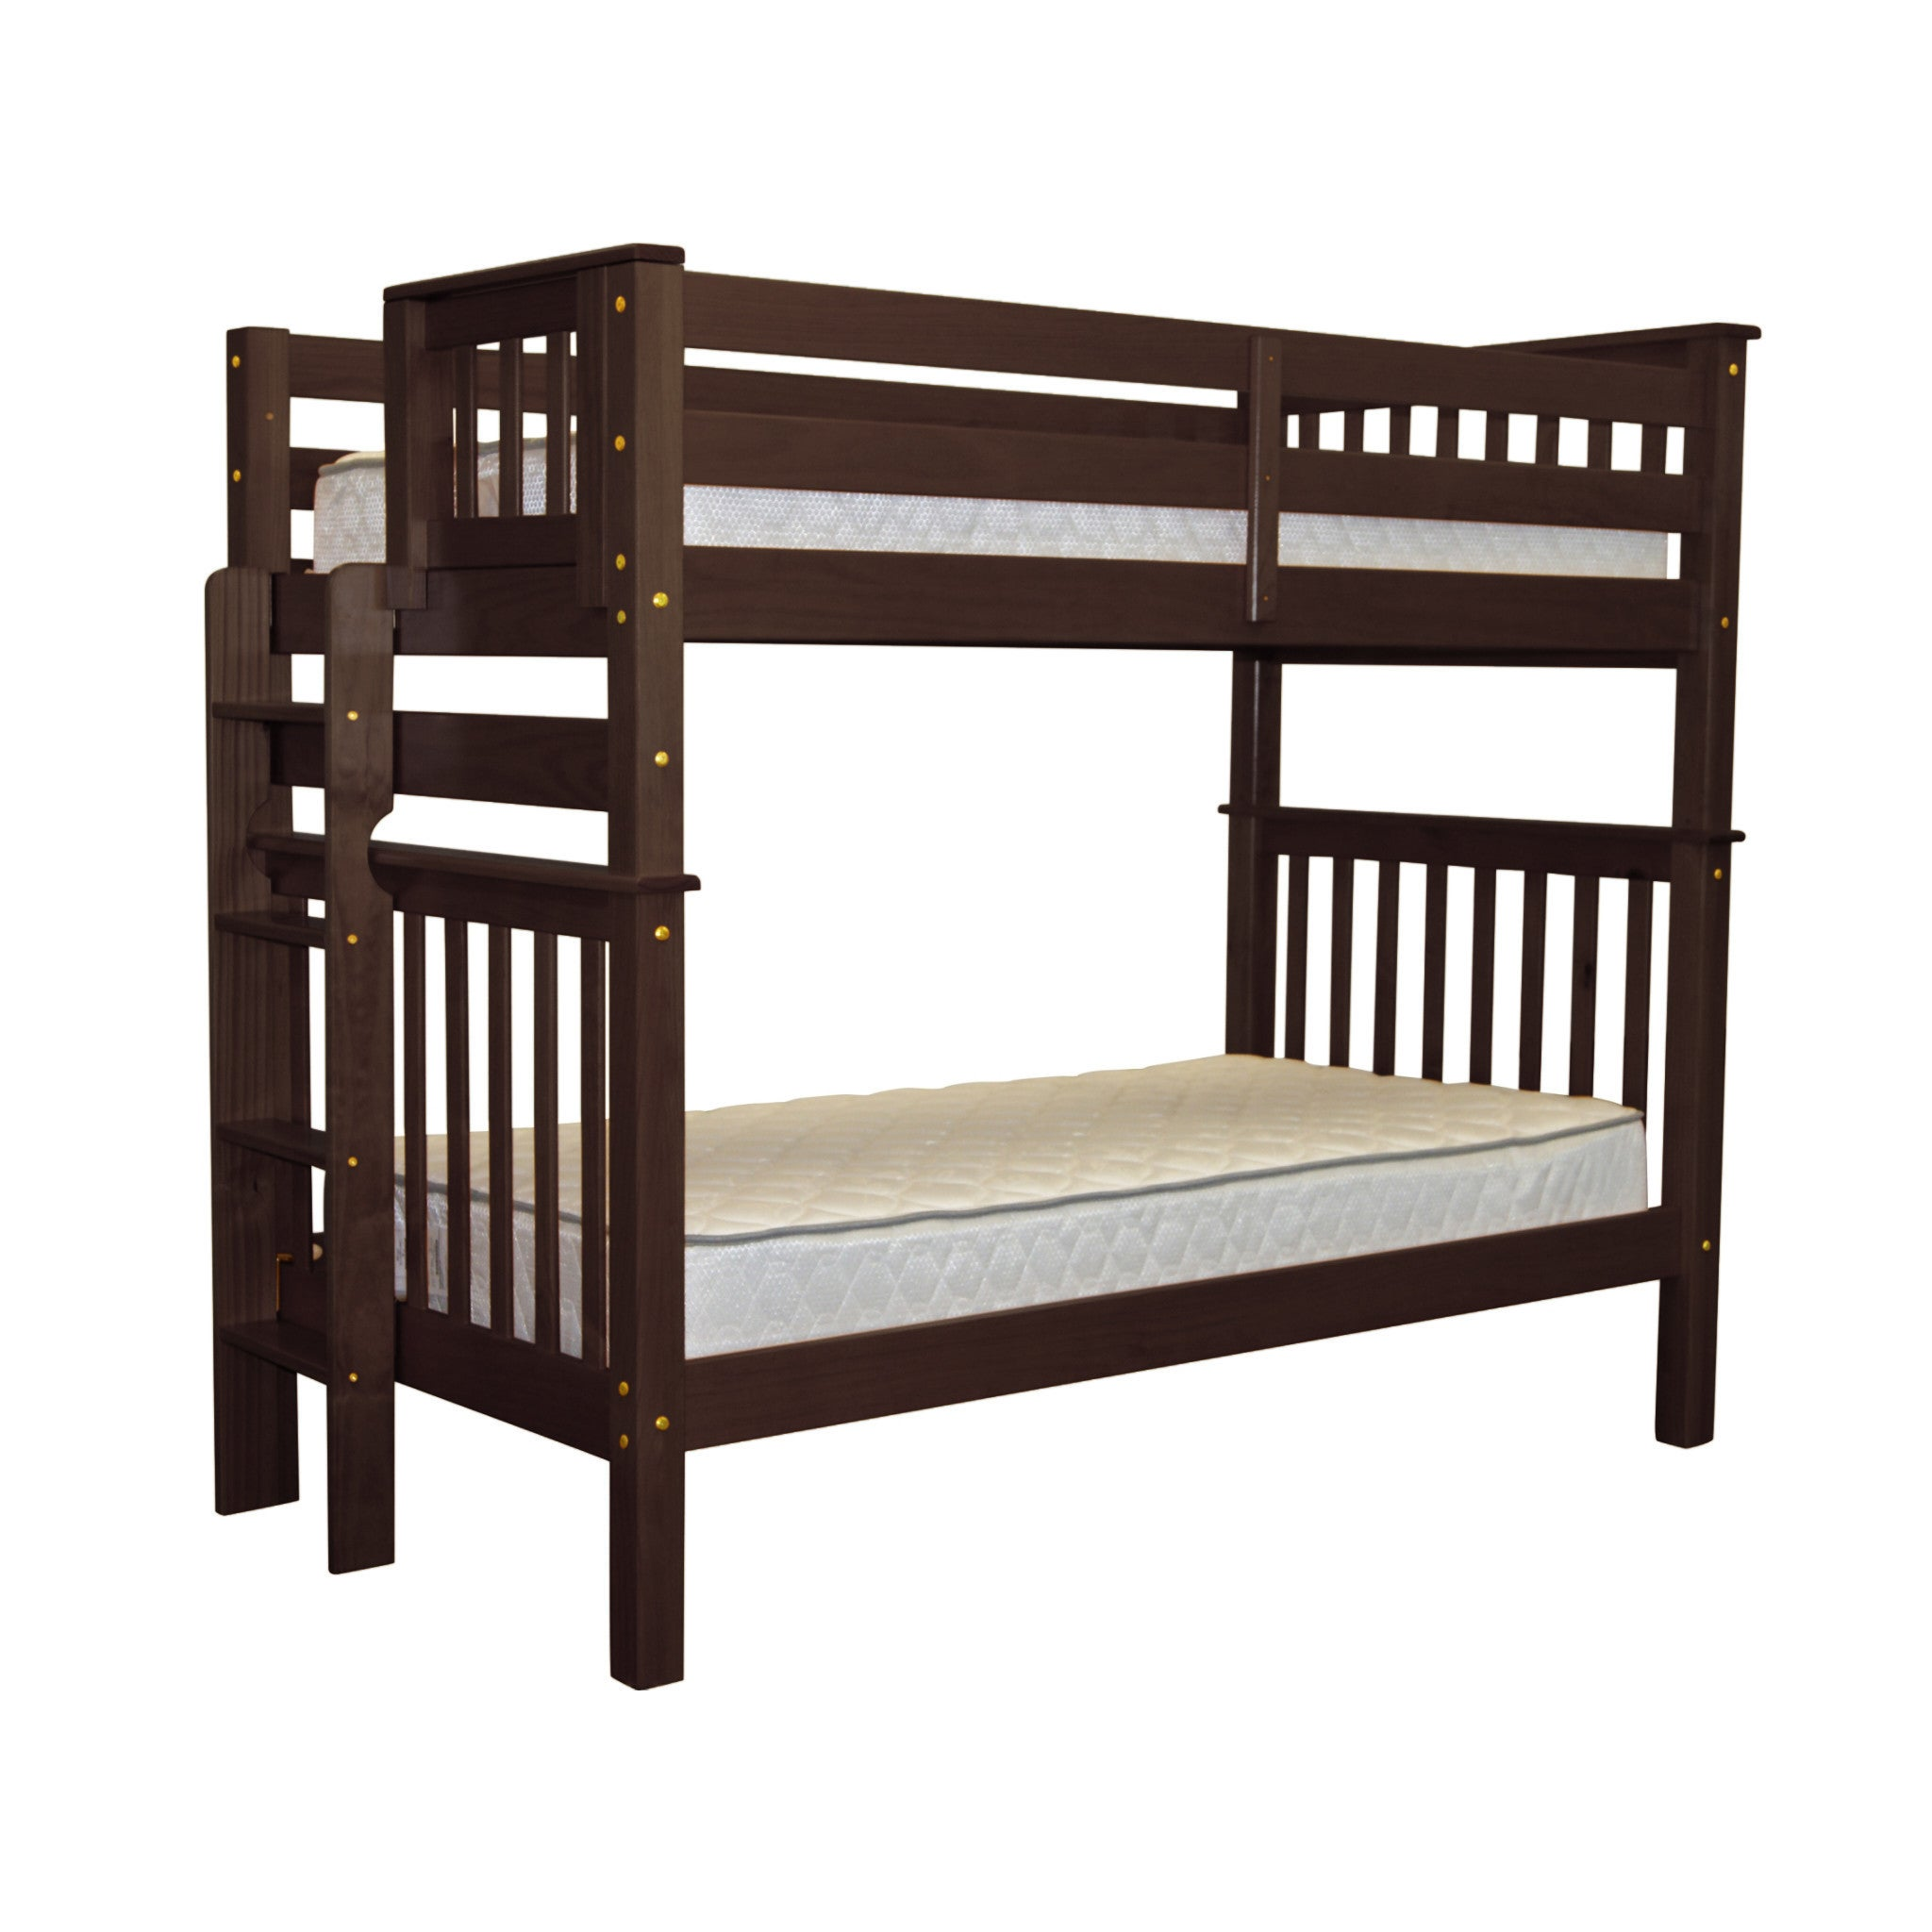 RoomMates Bedz King Tall Mission Style Bunk Bed Twin over...